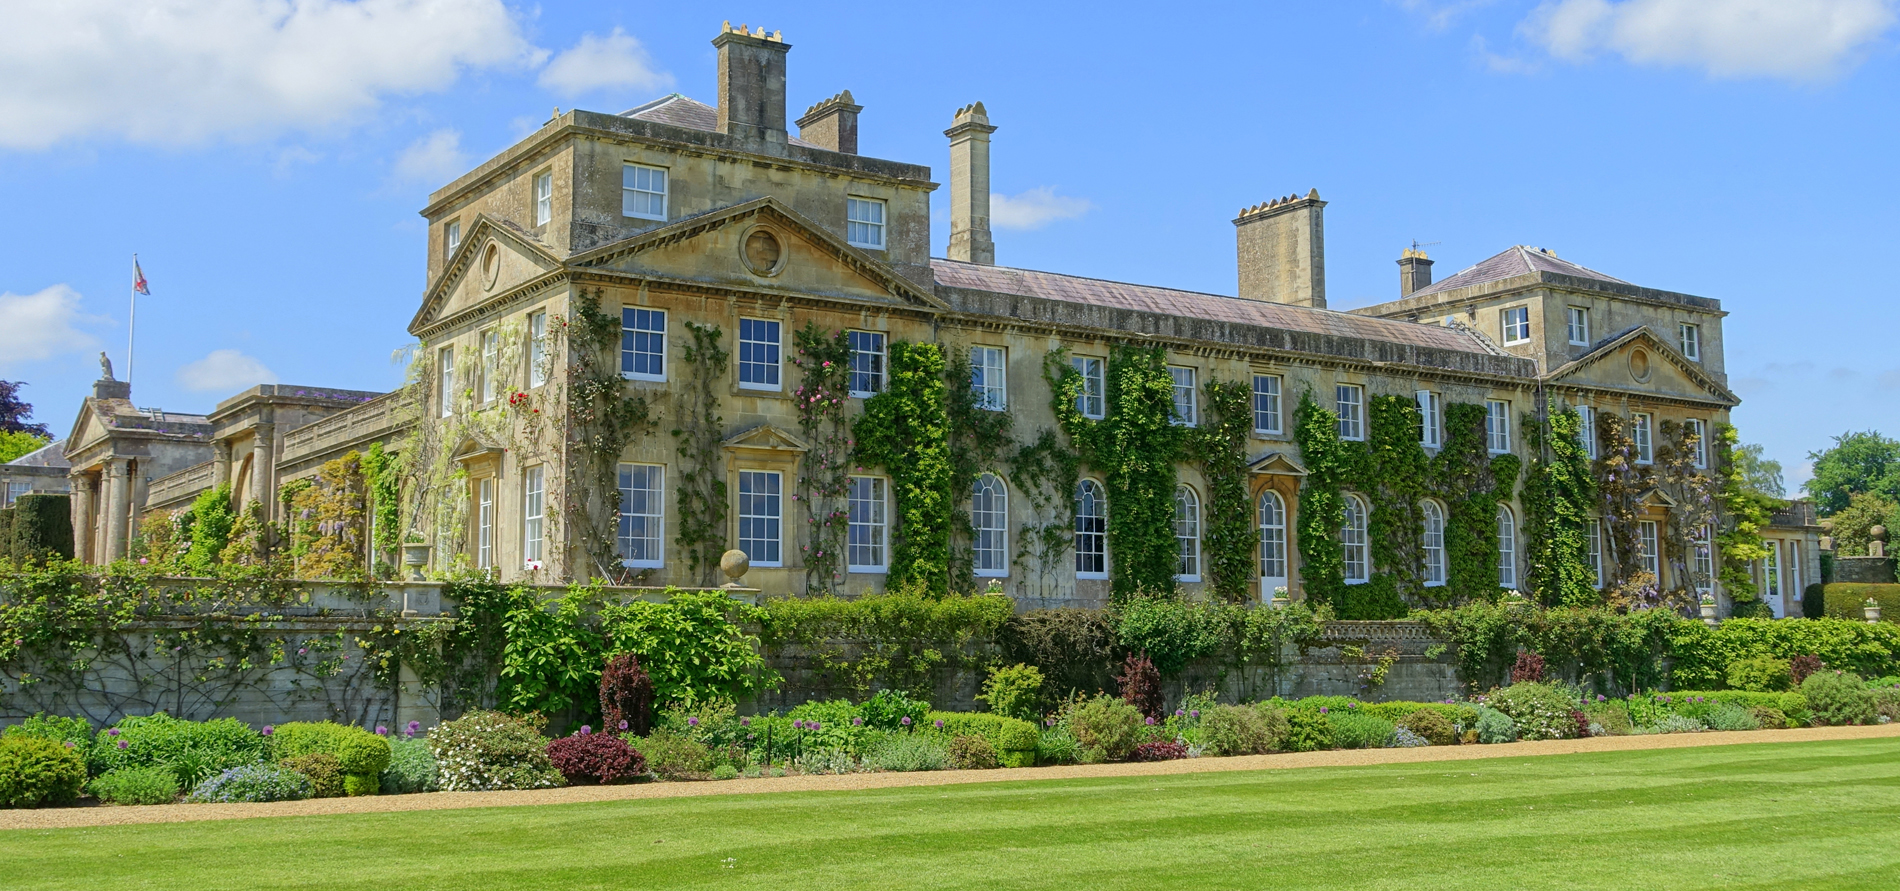 Bowood House, Wiltshire